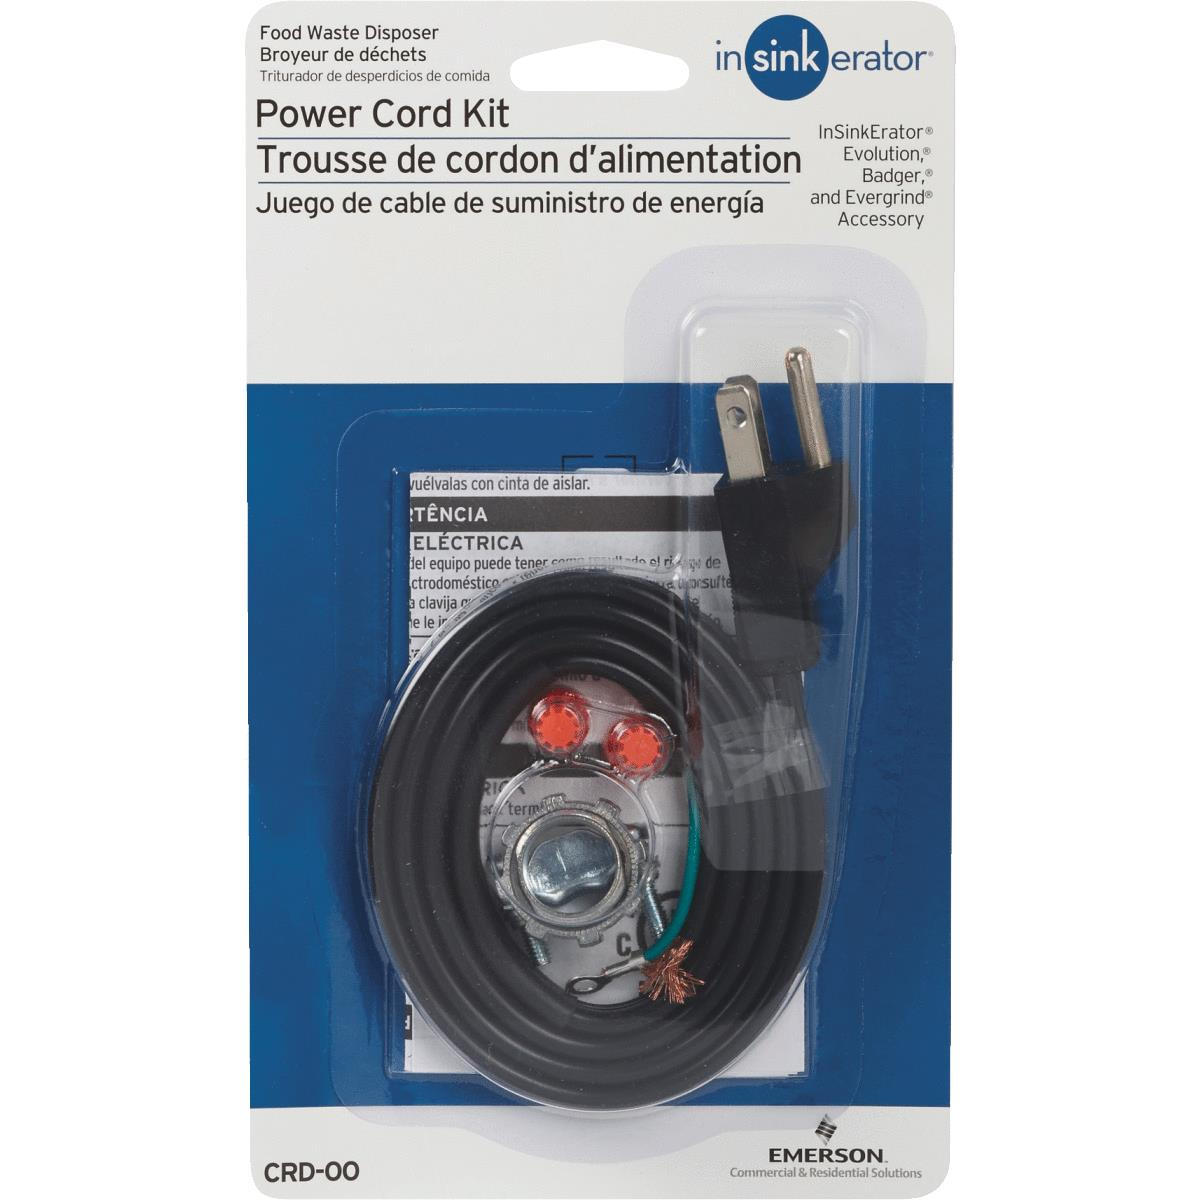 In Sink Erator Power Cord